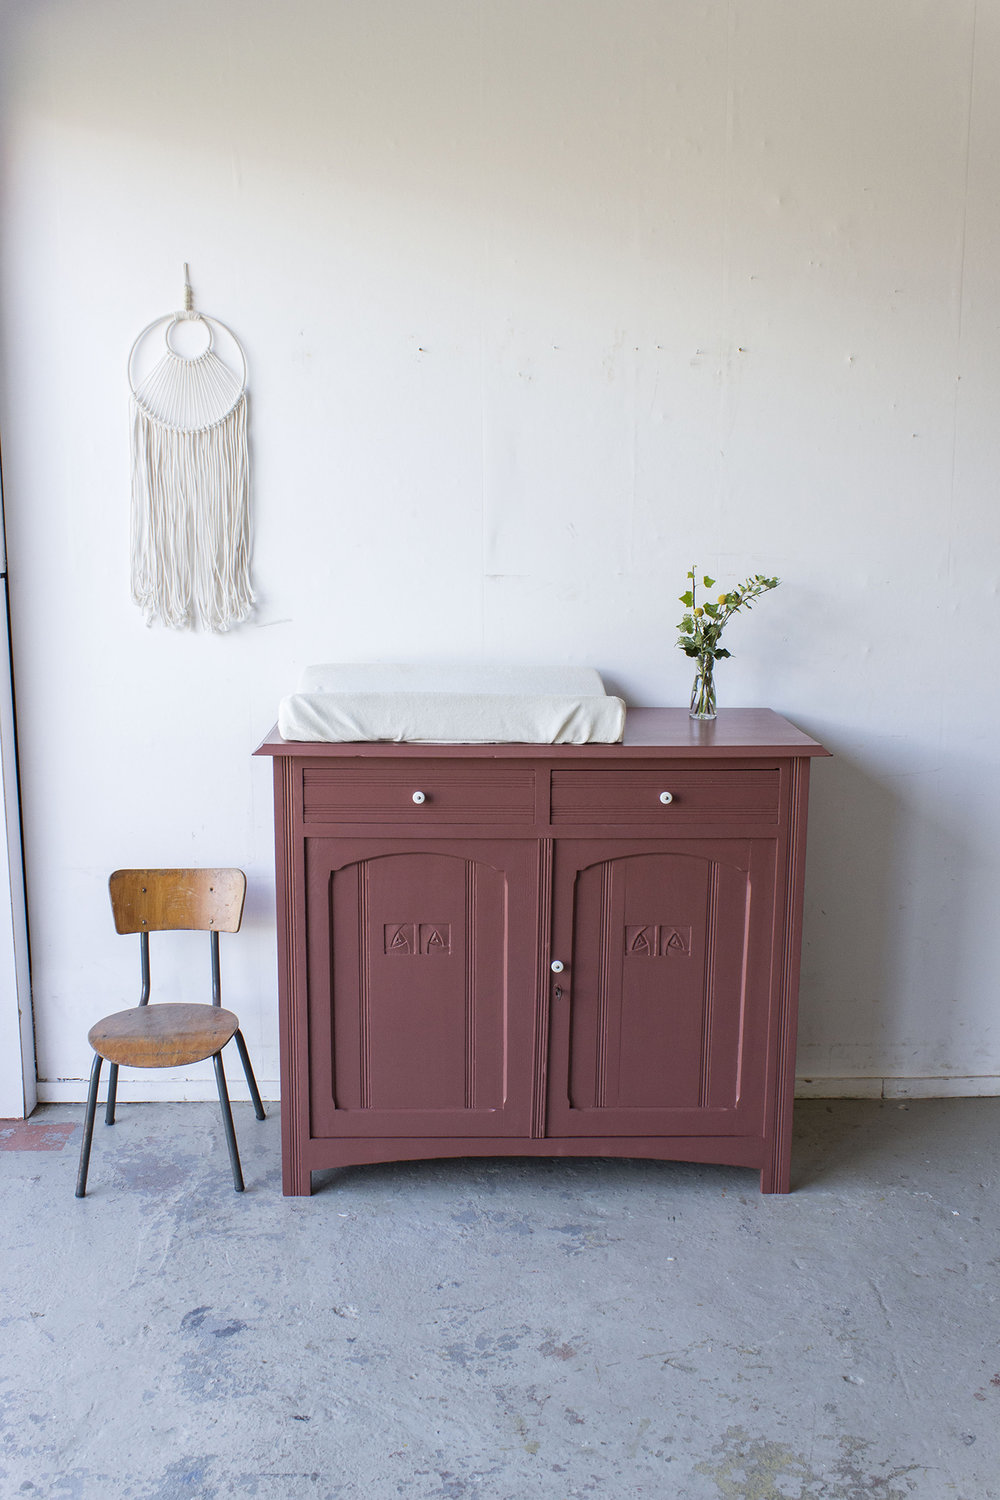 Karmozijn vintage commode -  Firma zoethout.jpg